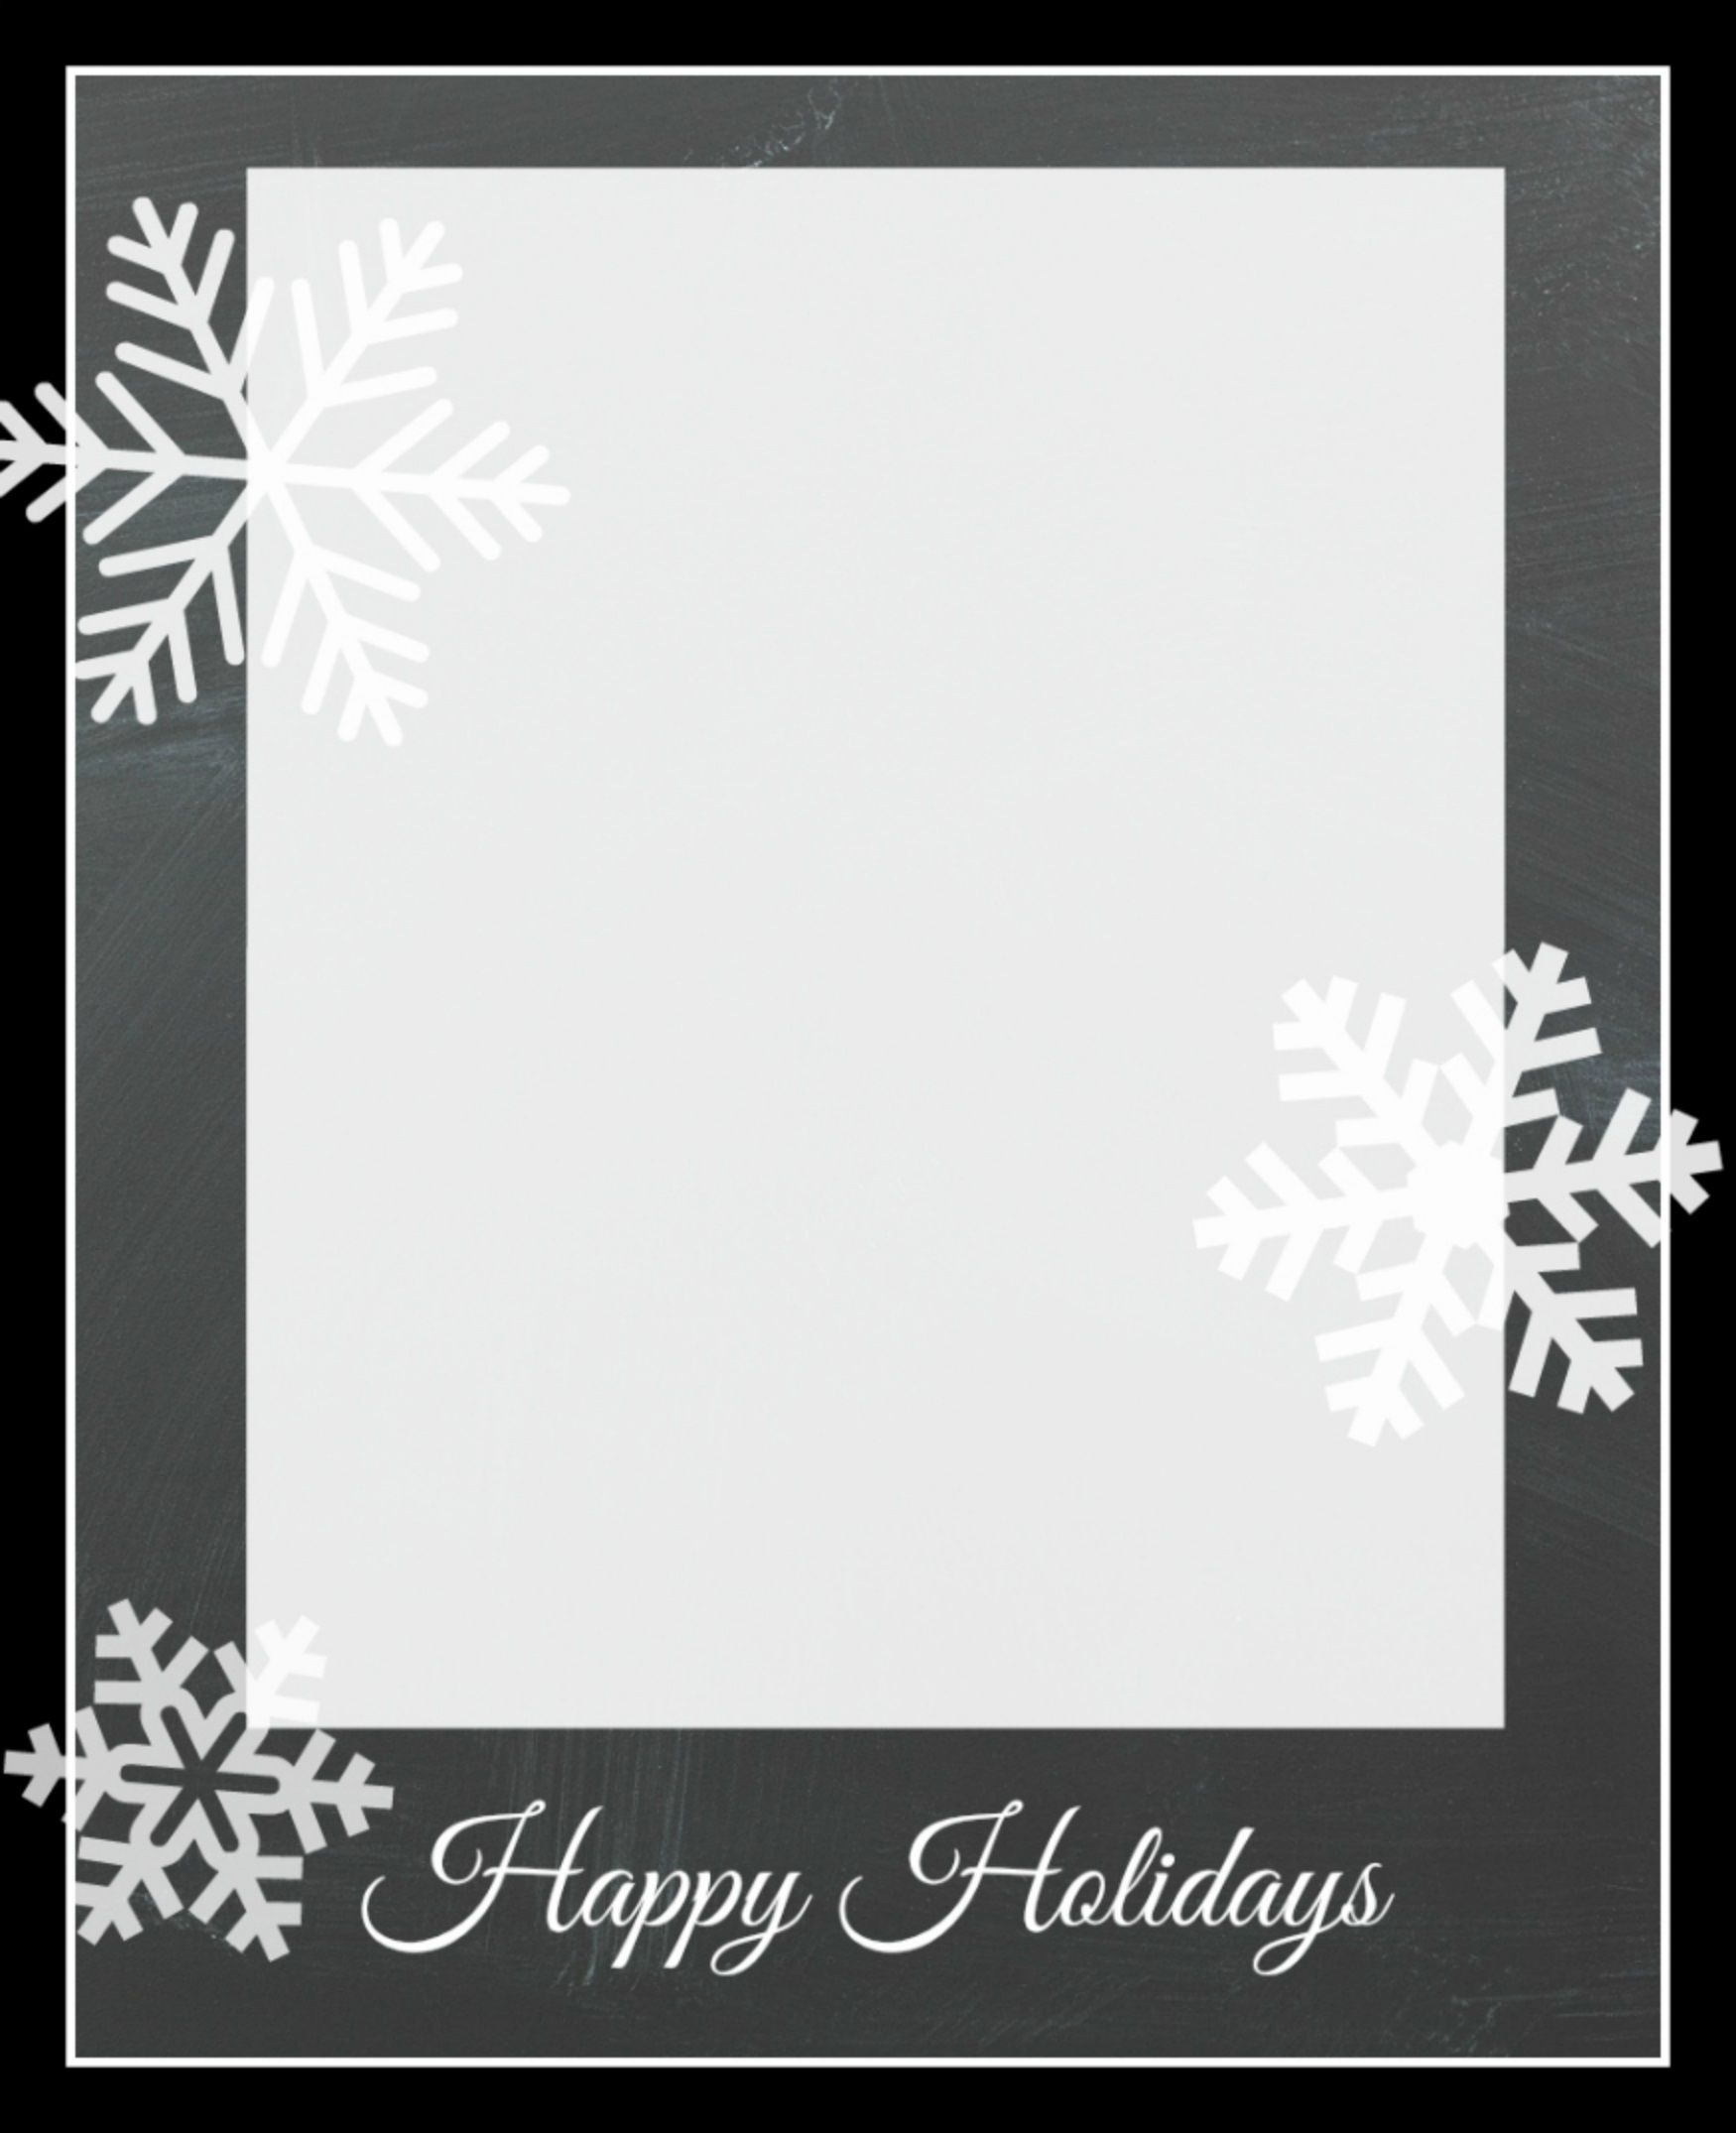 009 Frightening Free Holiday Card Template Sample  Templates Printable Photo For WordFull